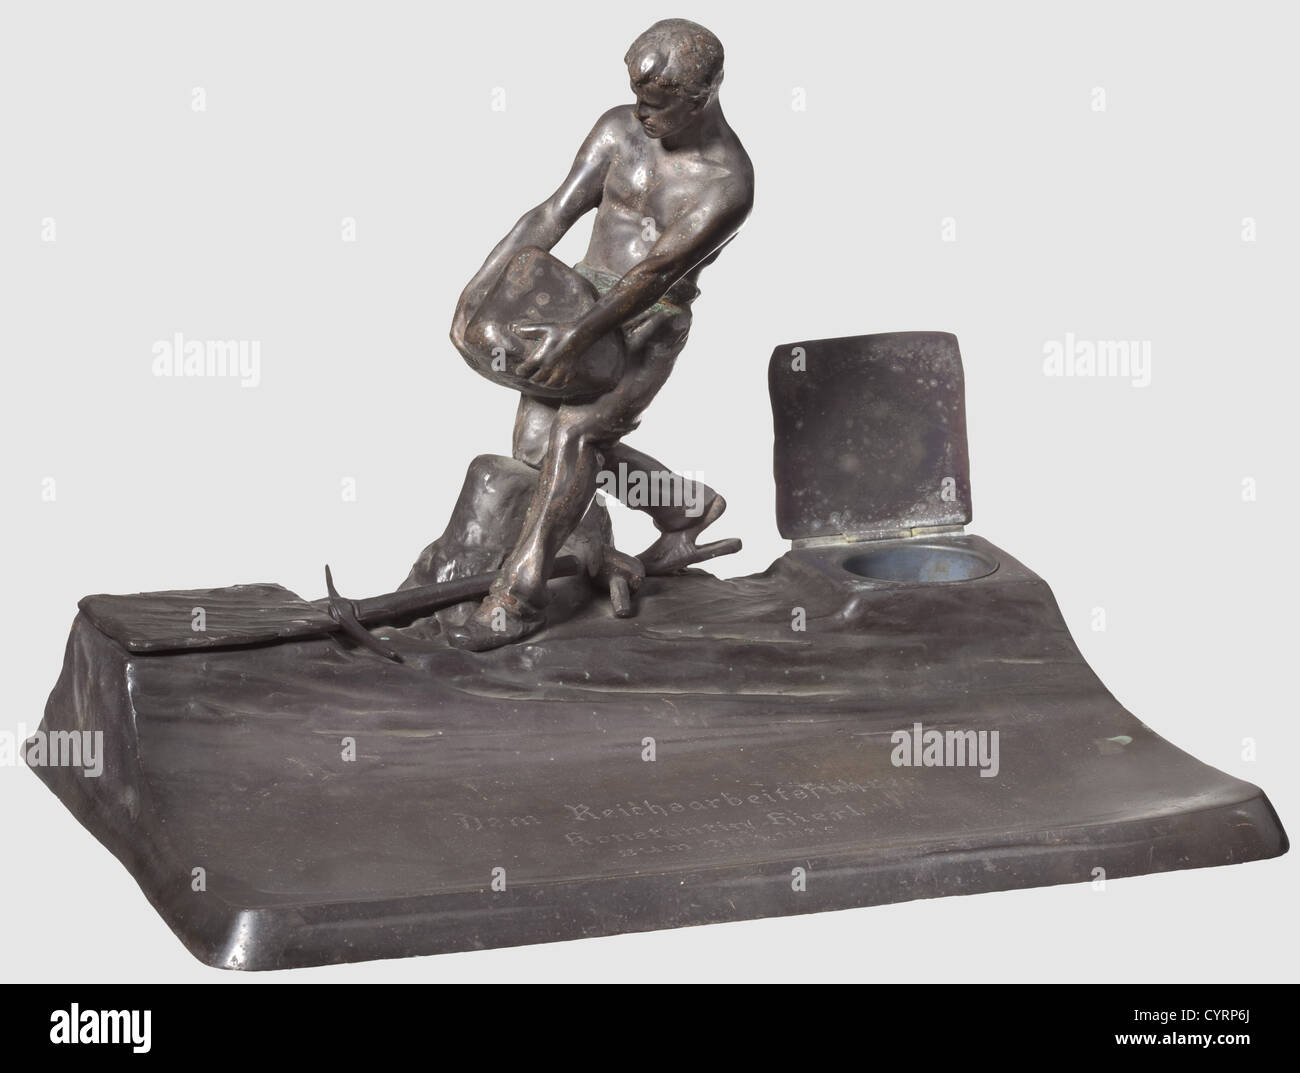 Konstantin Hierl, a presentation writing table set made of blackened bronze Modelled figure of a quarryman with - Stock Image